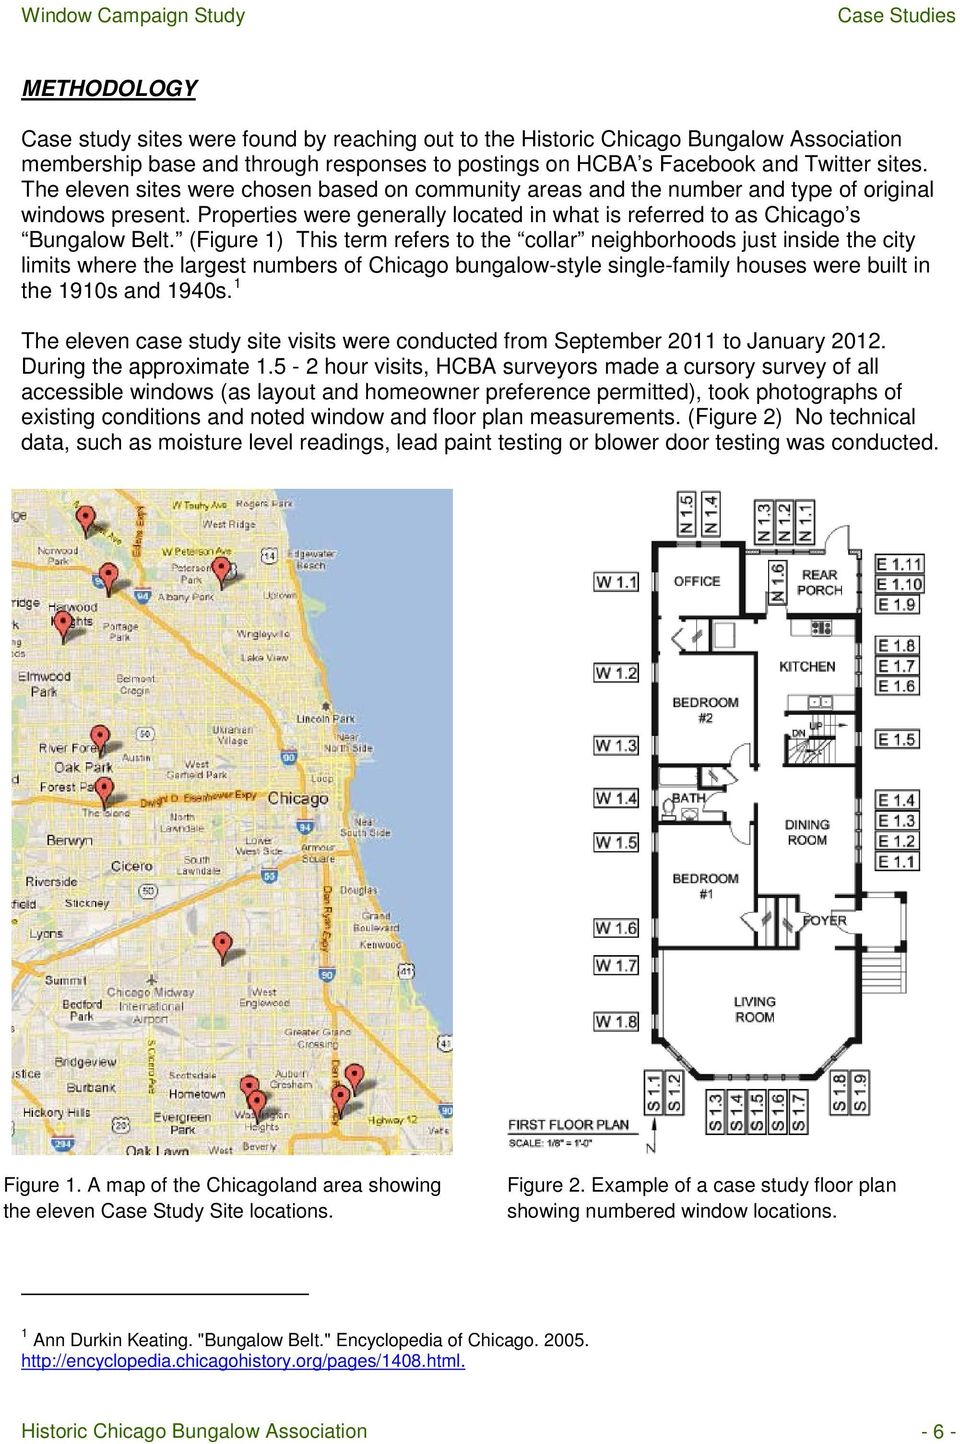 (Figure 1) This term refers to the collar neighborhoods just inside the city limits where the largest numbers of Chicago bungalow-style single-family houses were built in the 1910s and 1940s.